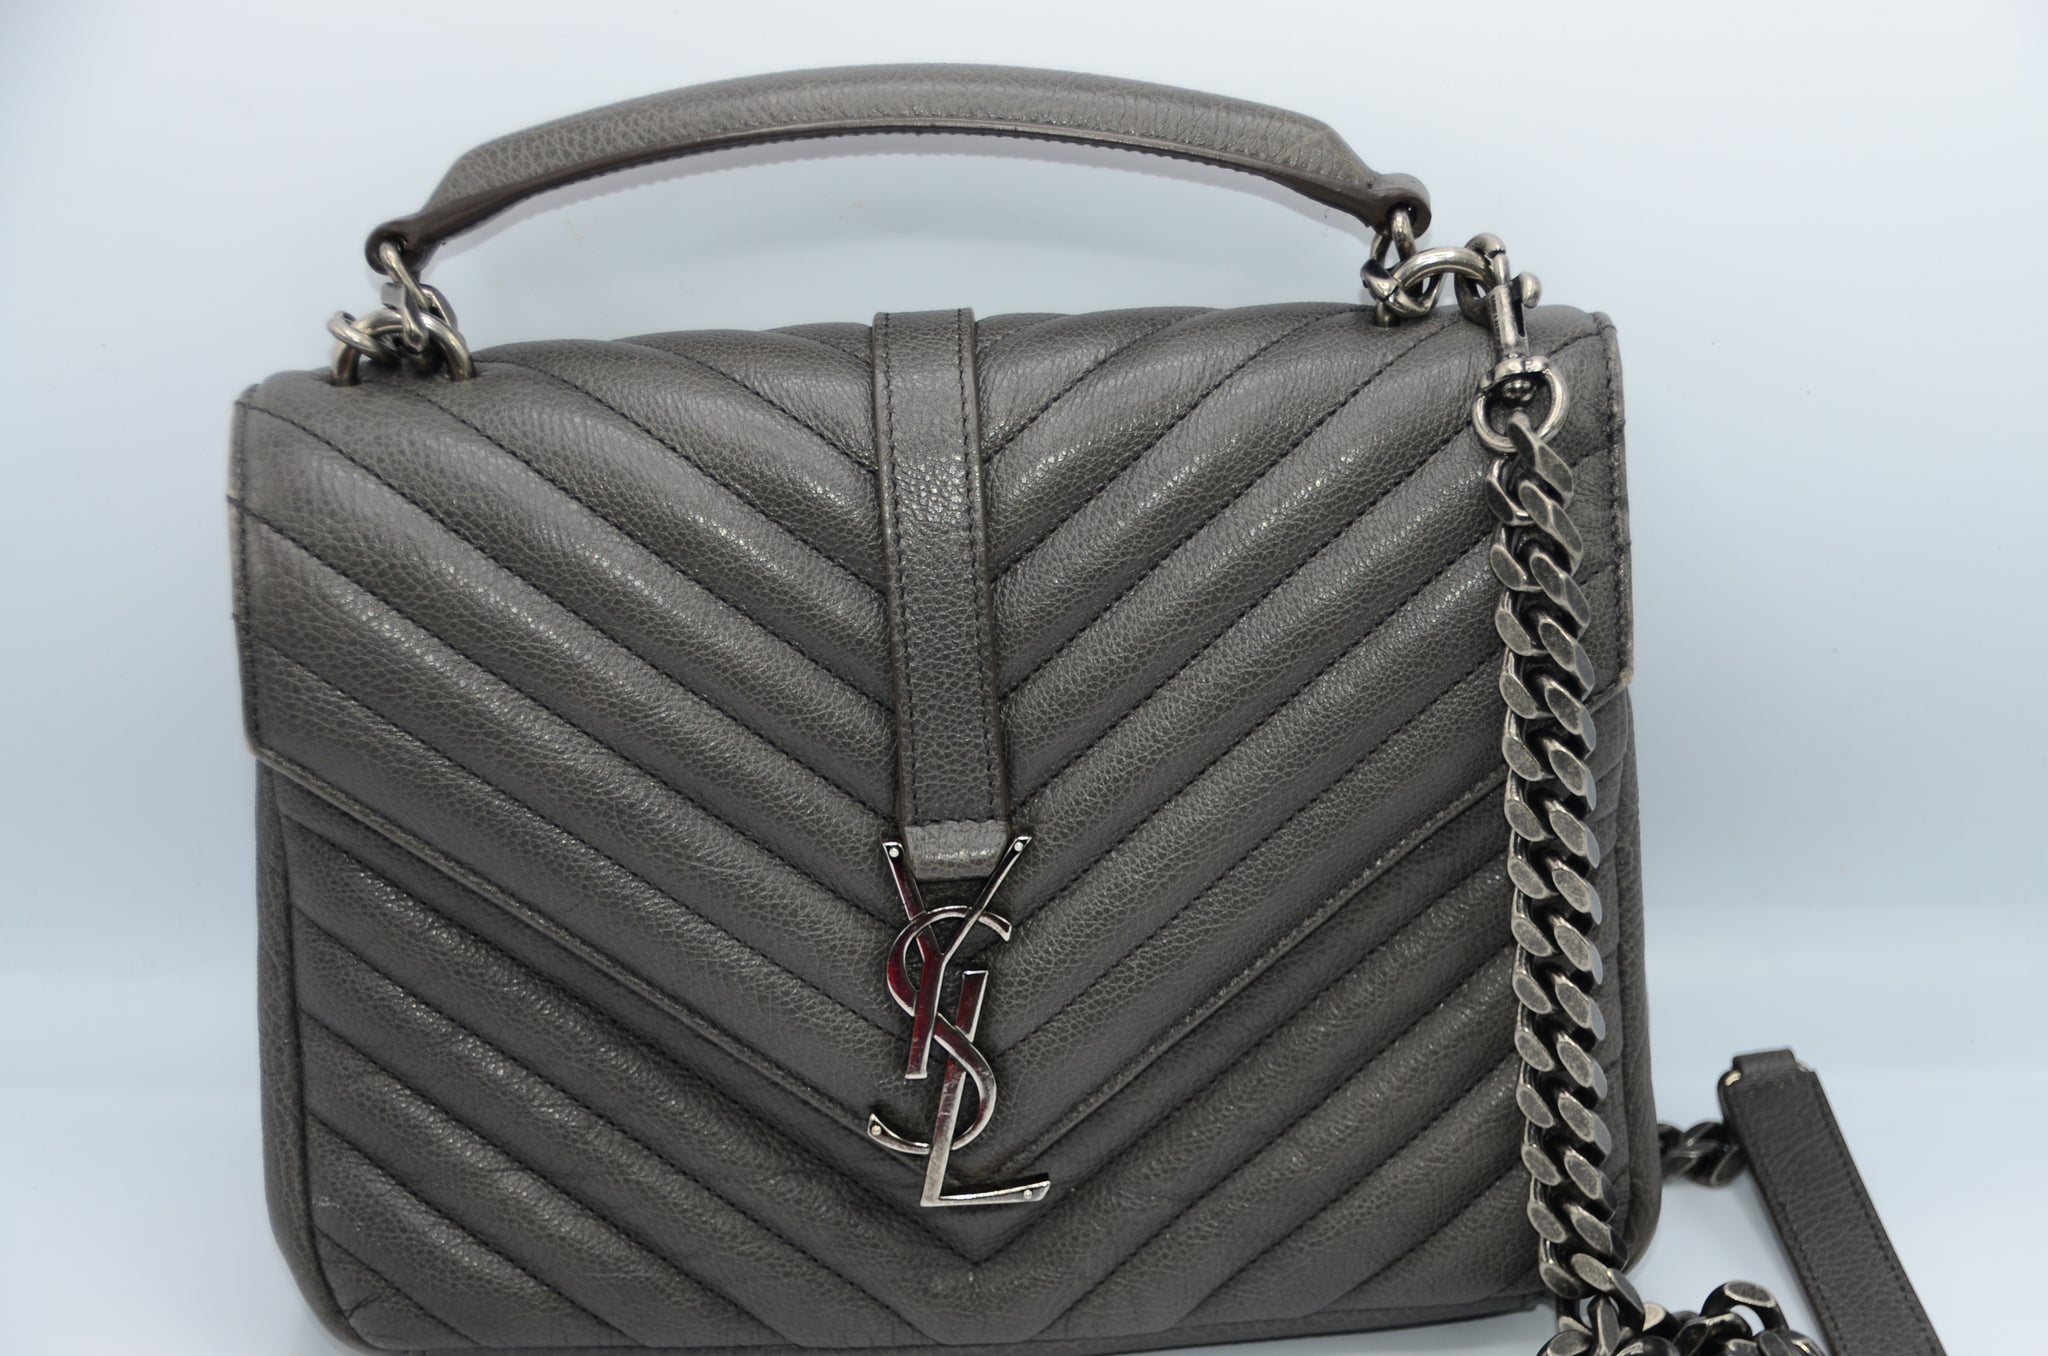 Saint Laurent College bag - Iconics Preloved Luxury